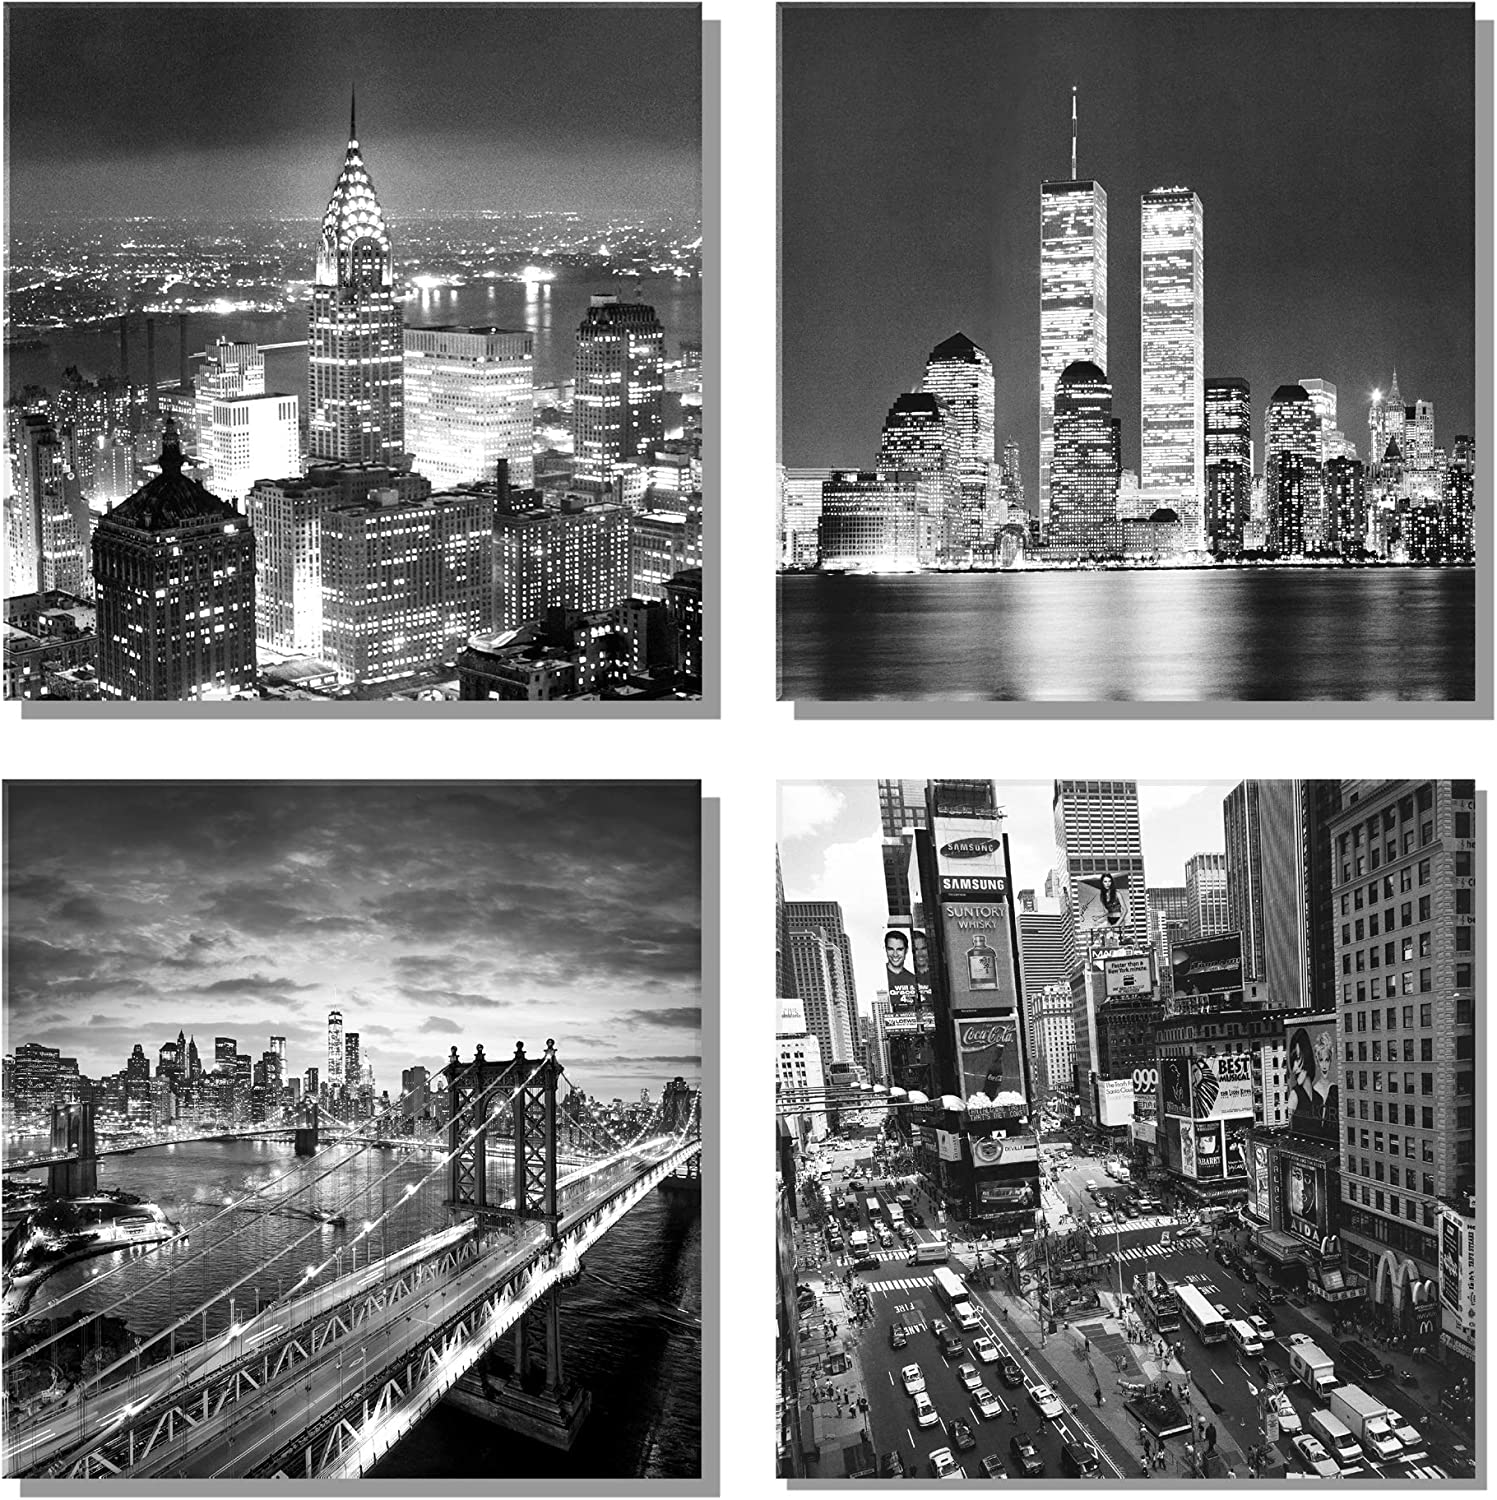 New York City Canvas Wall Art Brooklyn Bridge Empire State Building Artwork for Walls Pictures of Space Wall Decorations for Living Room Office Bedroom Home Decor